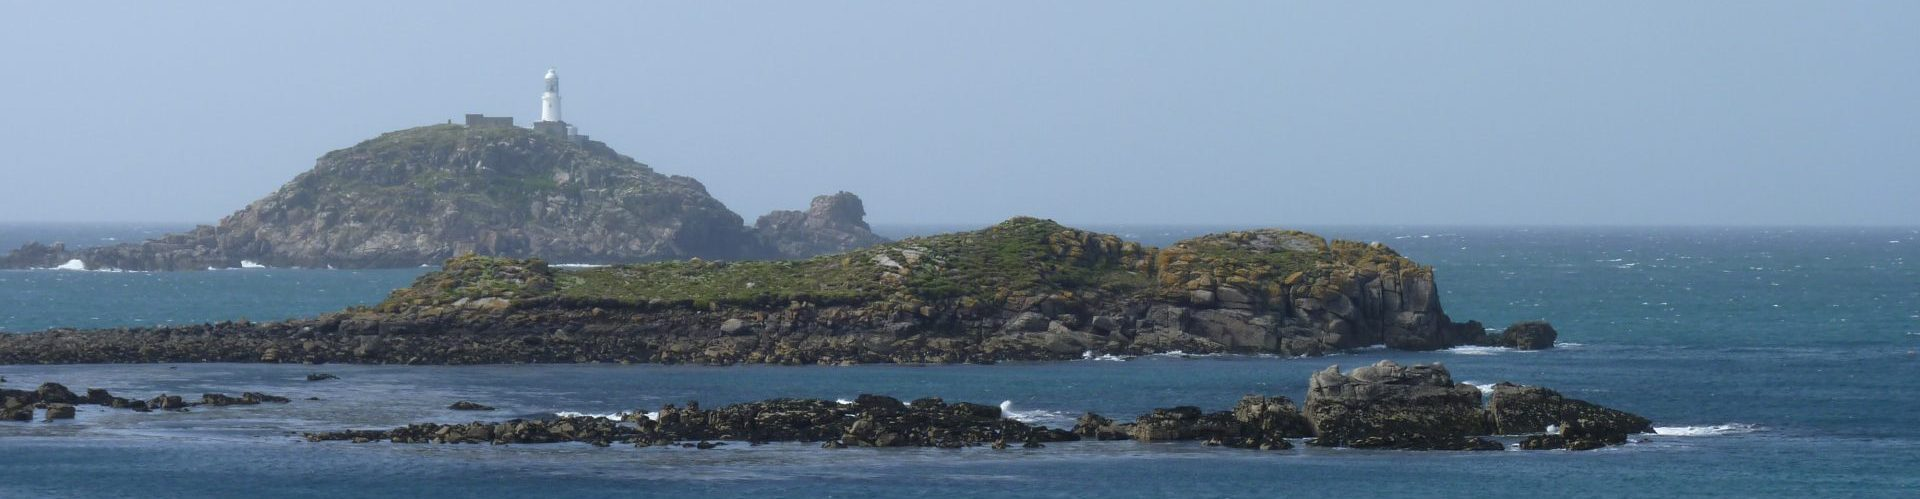 St-Martin's-Isles-of-Scilly